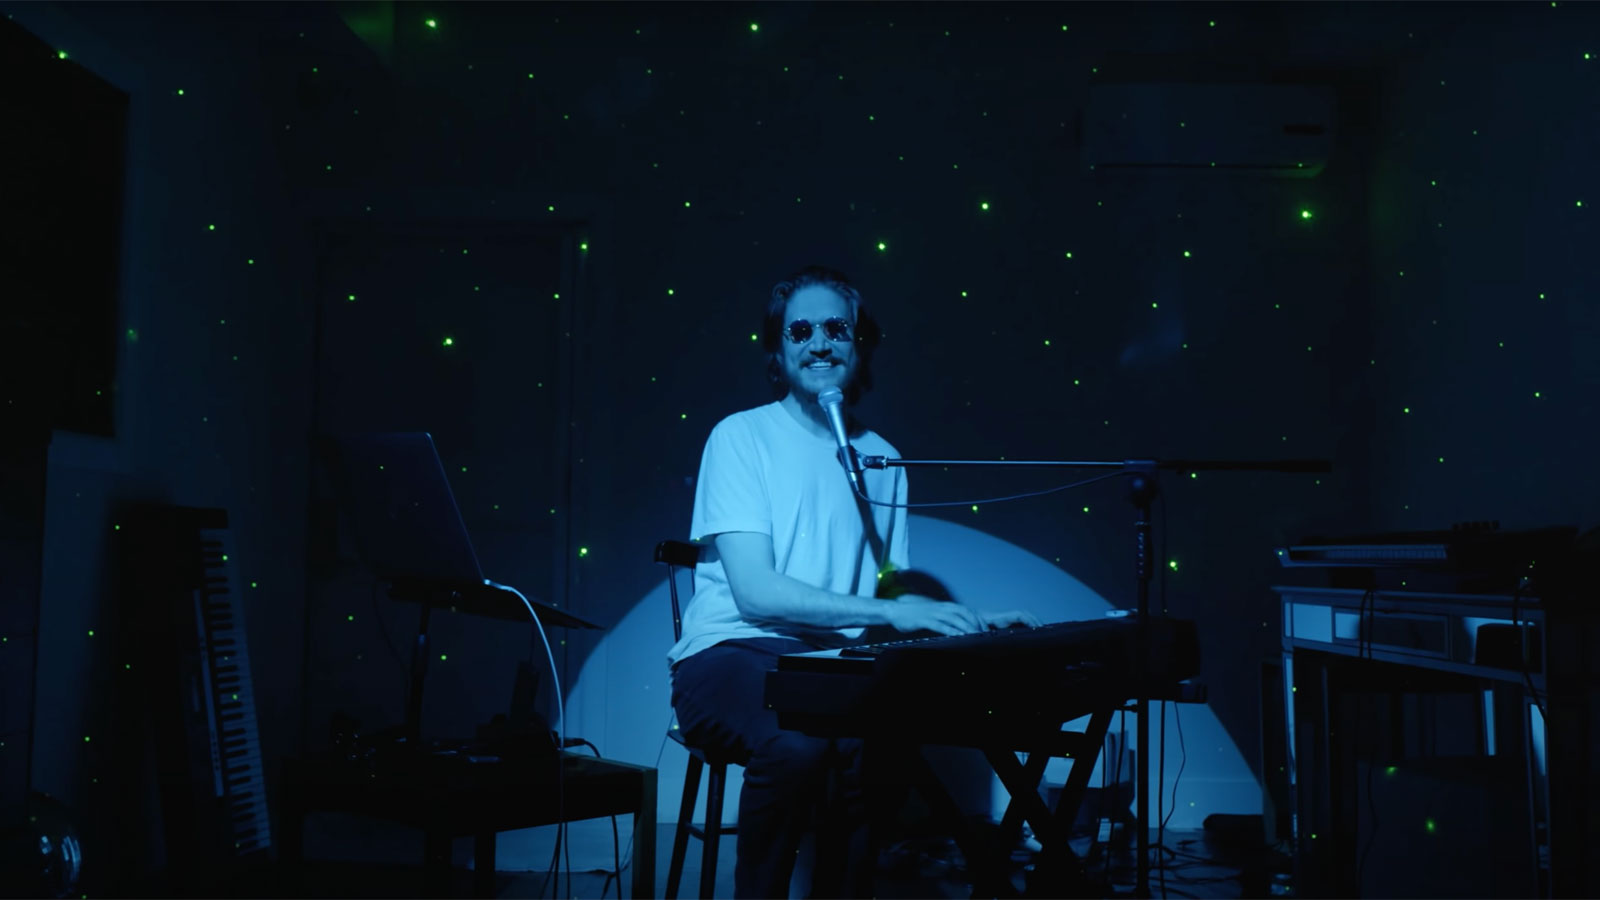 A man wearing sunglasses plays the keyboard while a blue spotlight shines on him, with a starry sky projected in the background